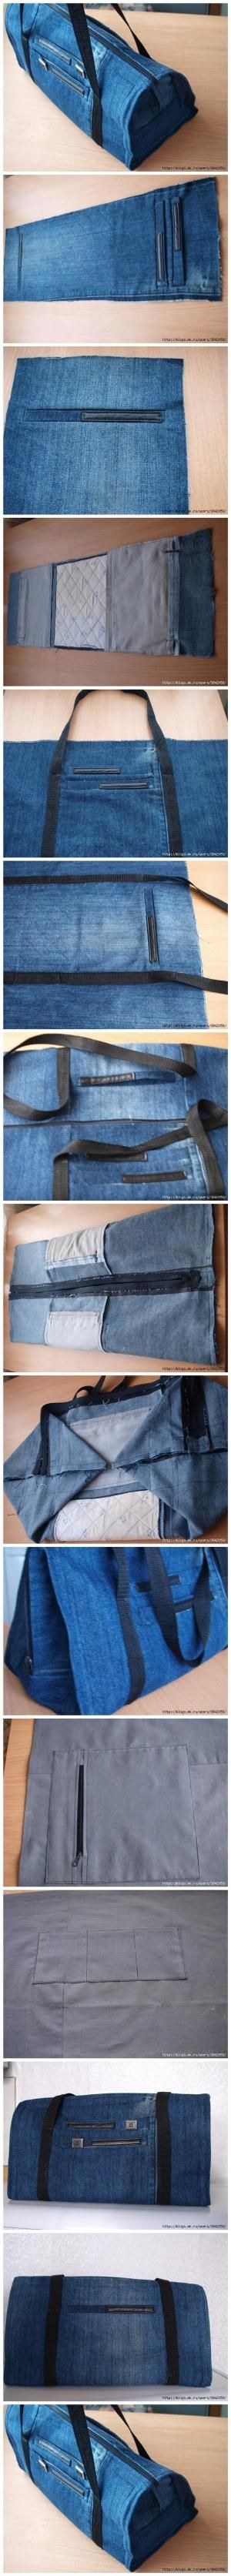 How to sew DIY handbags with recycled jeans step by step tutorial instructions , How to, how to do, diy instructions, crafts, do it yourself by Mary Smith fSesz